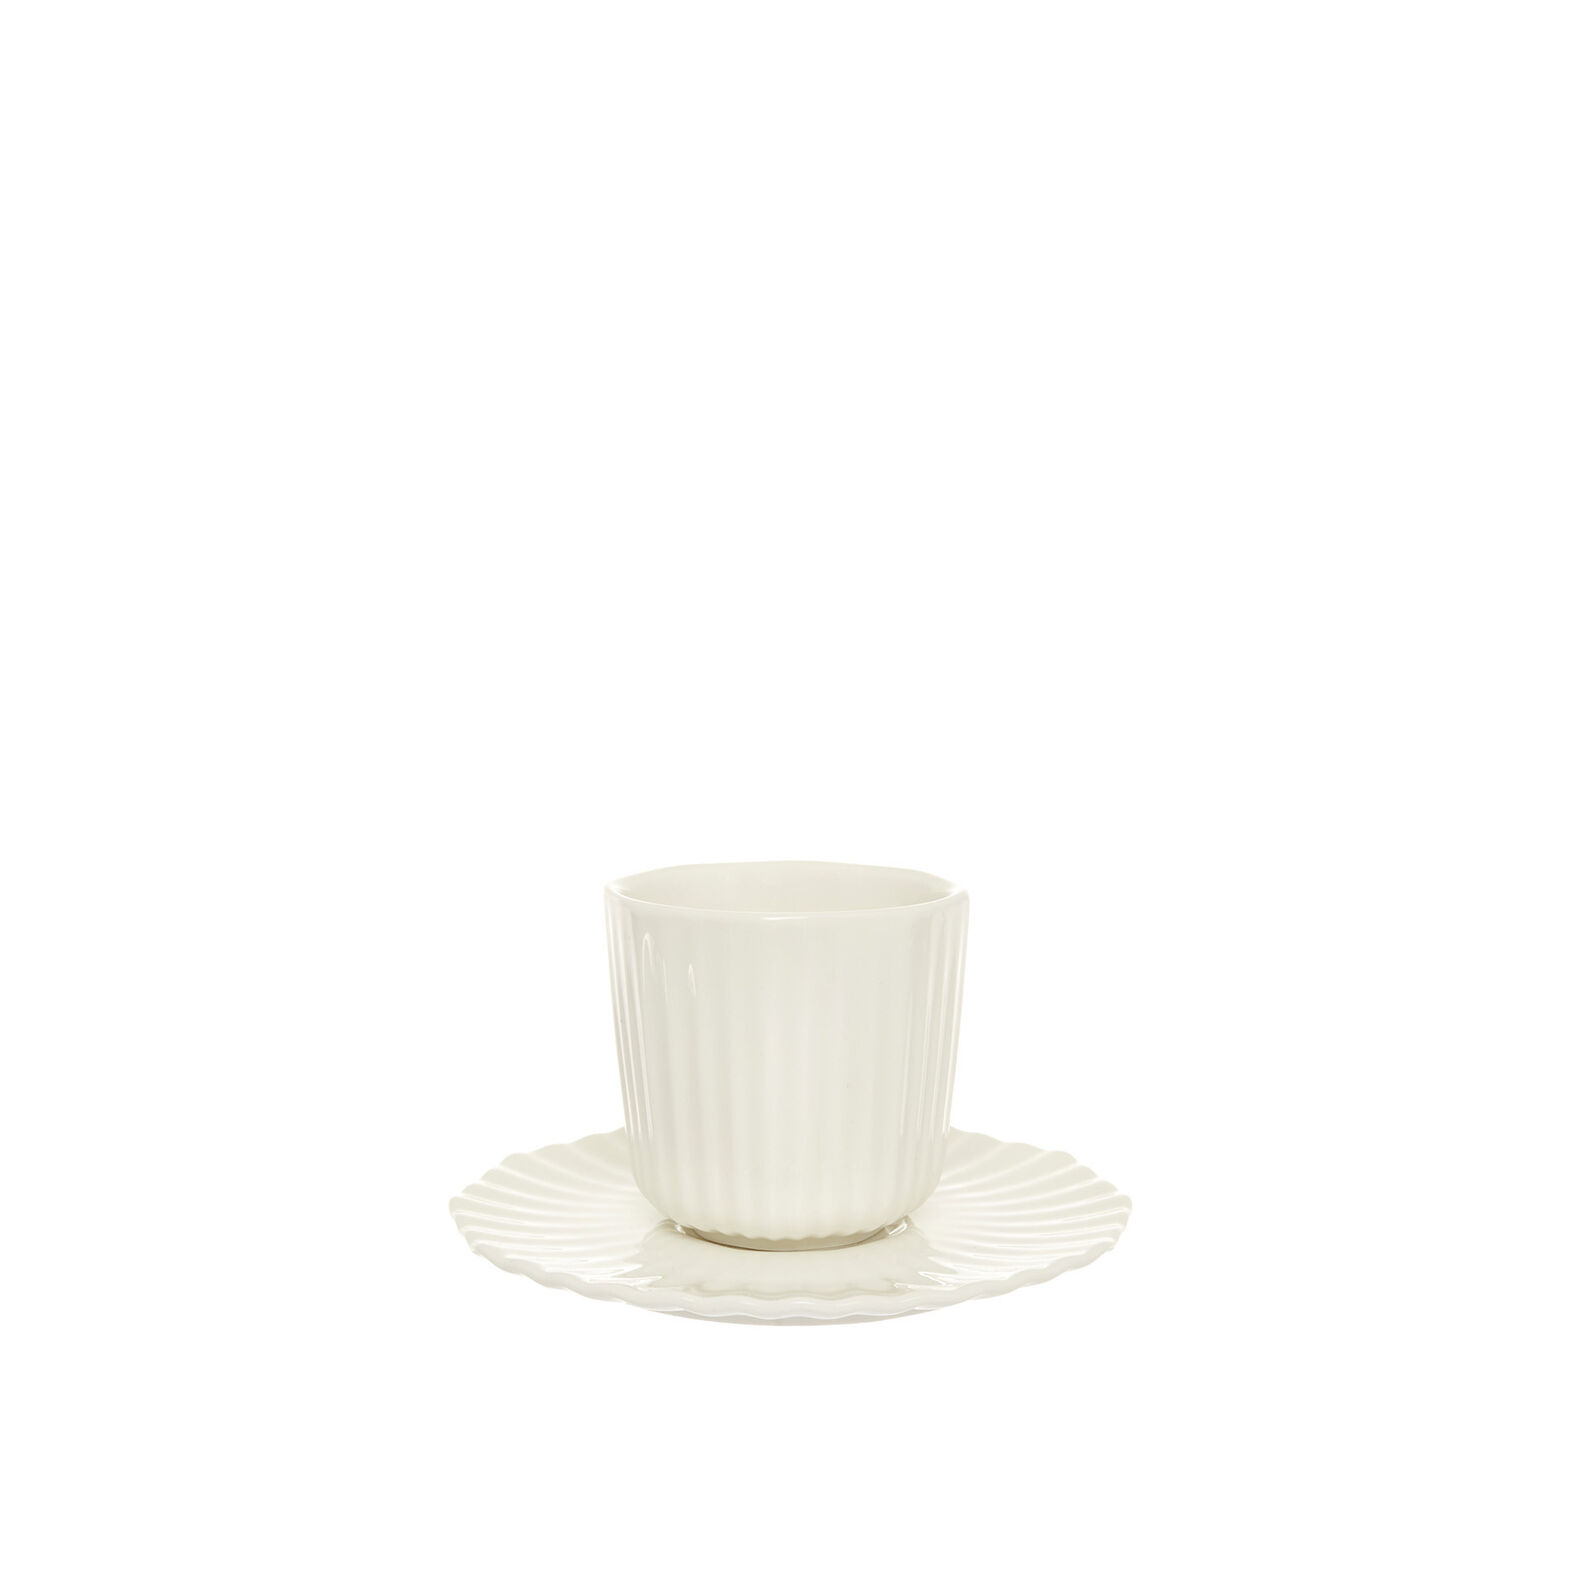 Striped porcelain coffee cup